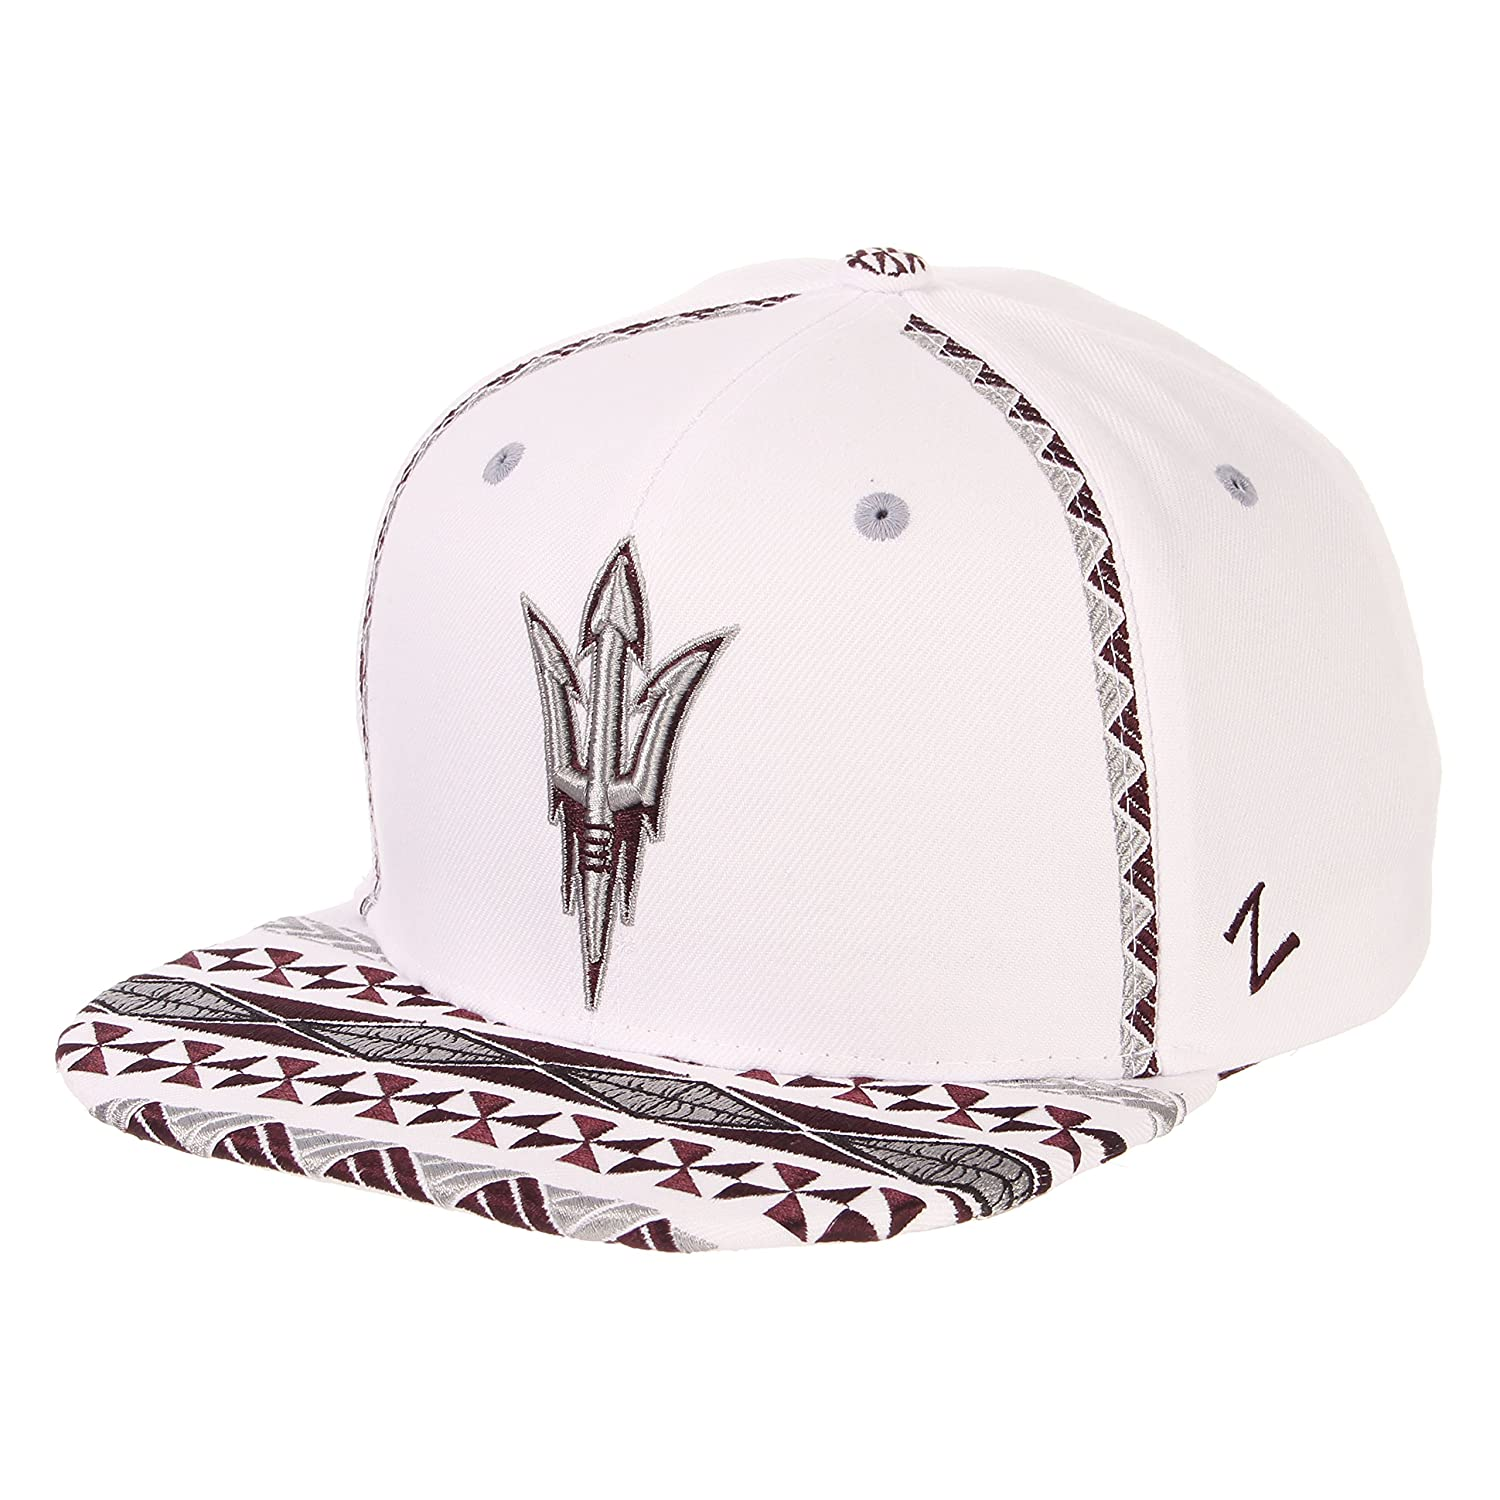 brand new ae302 9c390 spain cap store online 1f668 a46b5  australia amazon zhats ncaa arizona  state sun devils mens pukalani snapback hat adjustable white sports outdoors